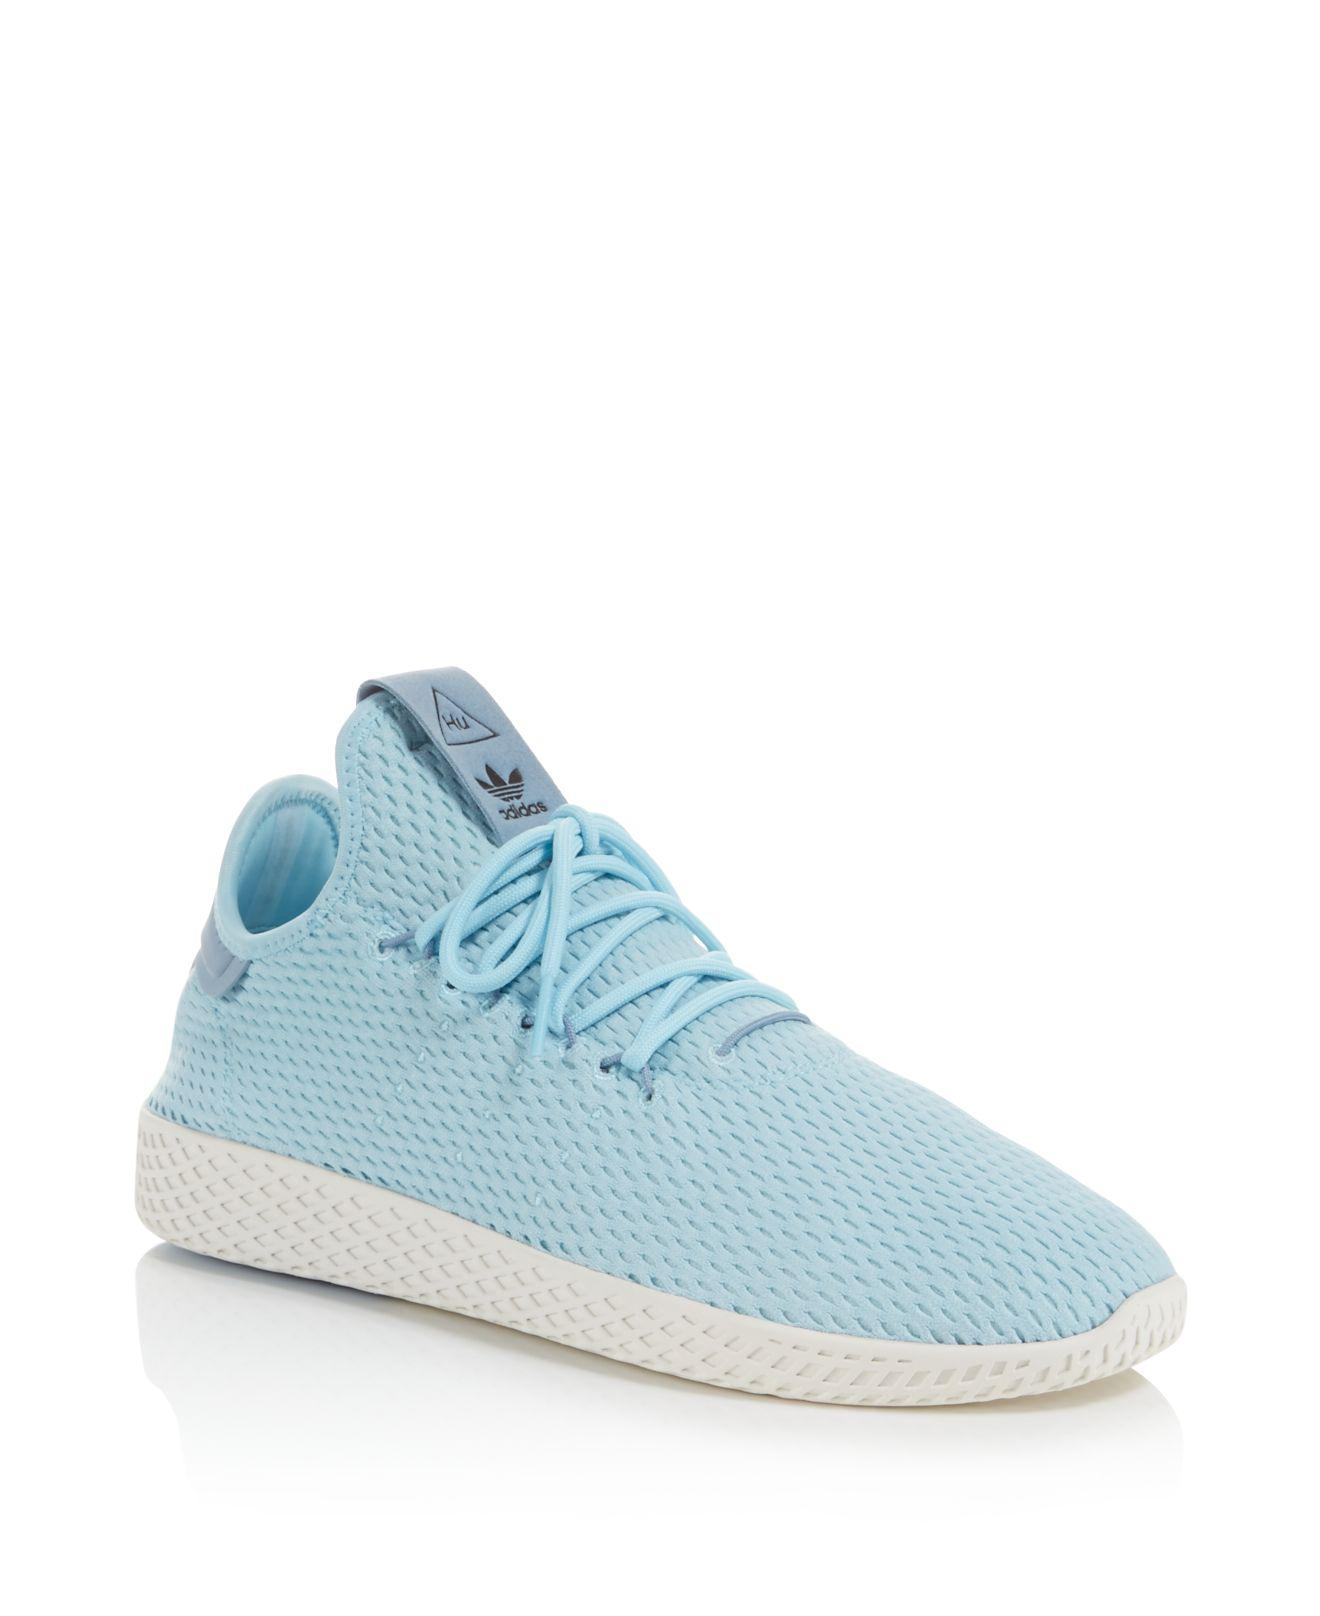 643e8086f adidas X Pharrell Williams Men s Human Race Trainer Sneakers in Blue ...